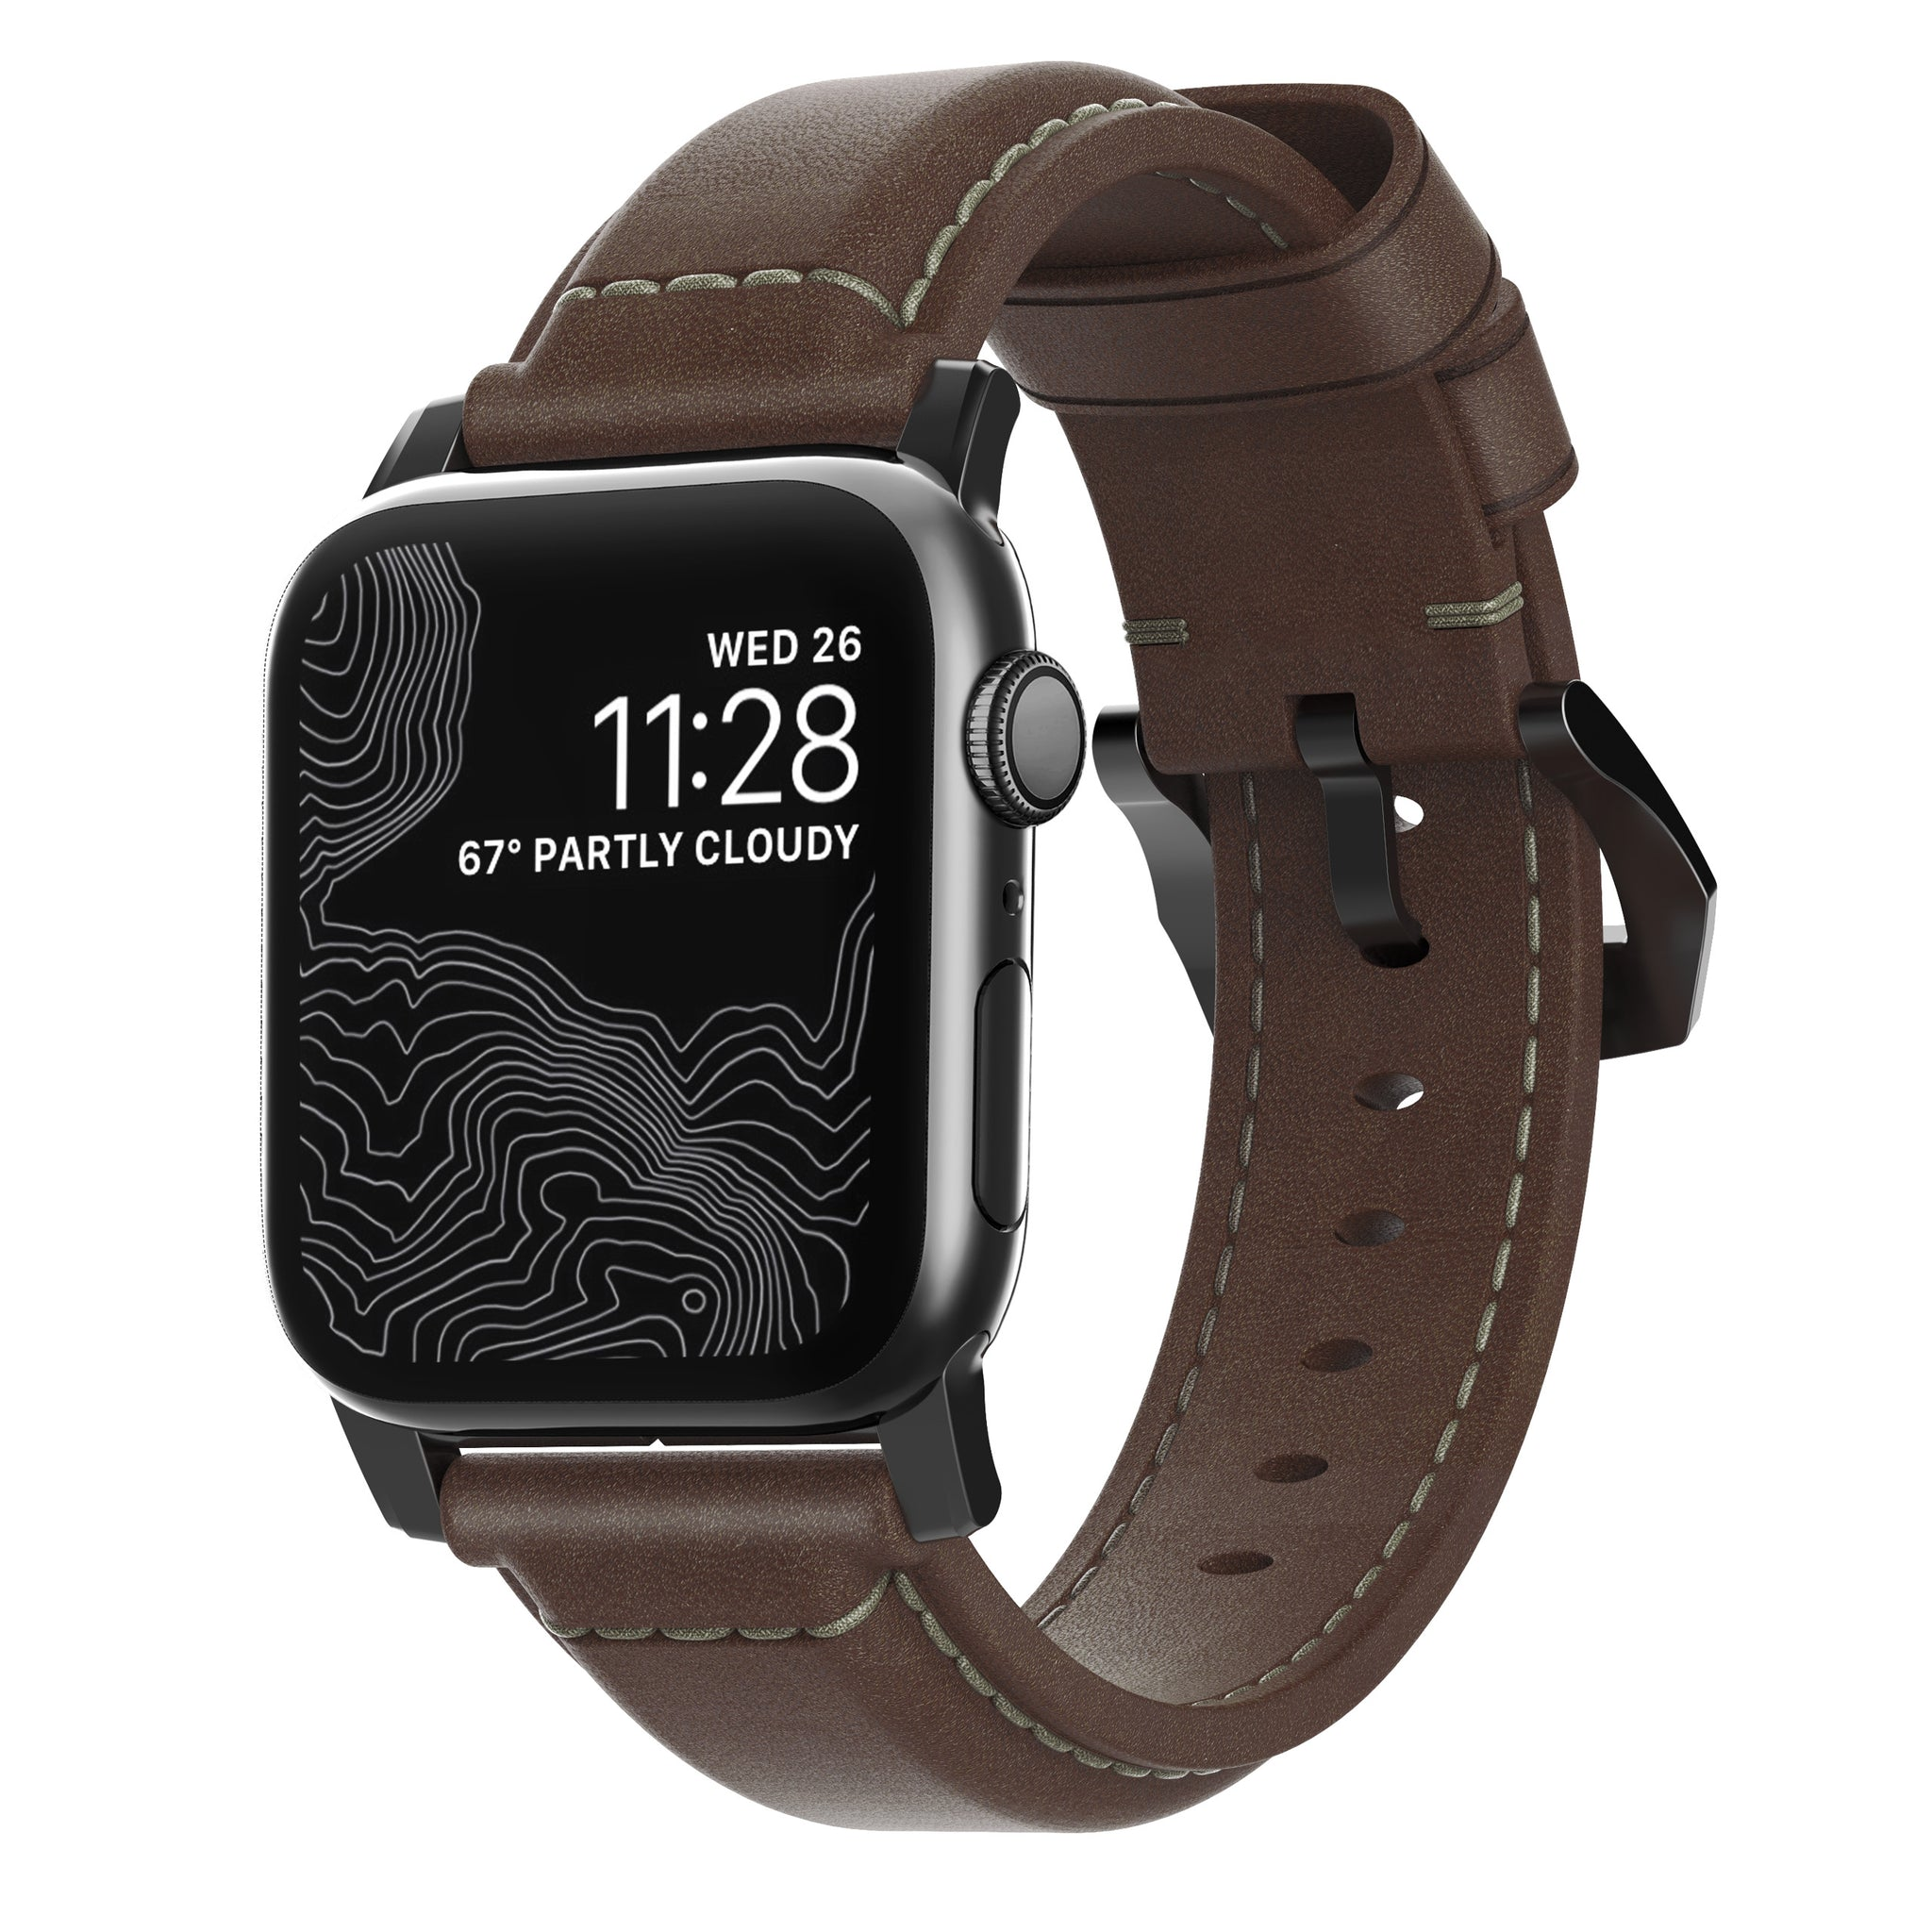 Nomad Traditional Leather Strap for Apple Watch - Rustic Brown / Black Hardware